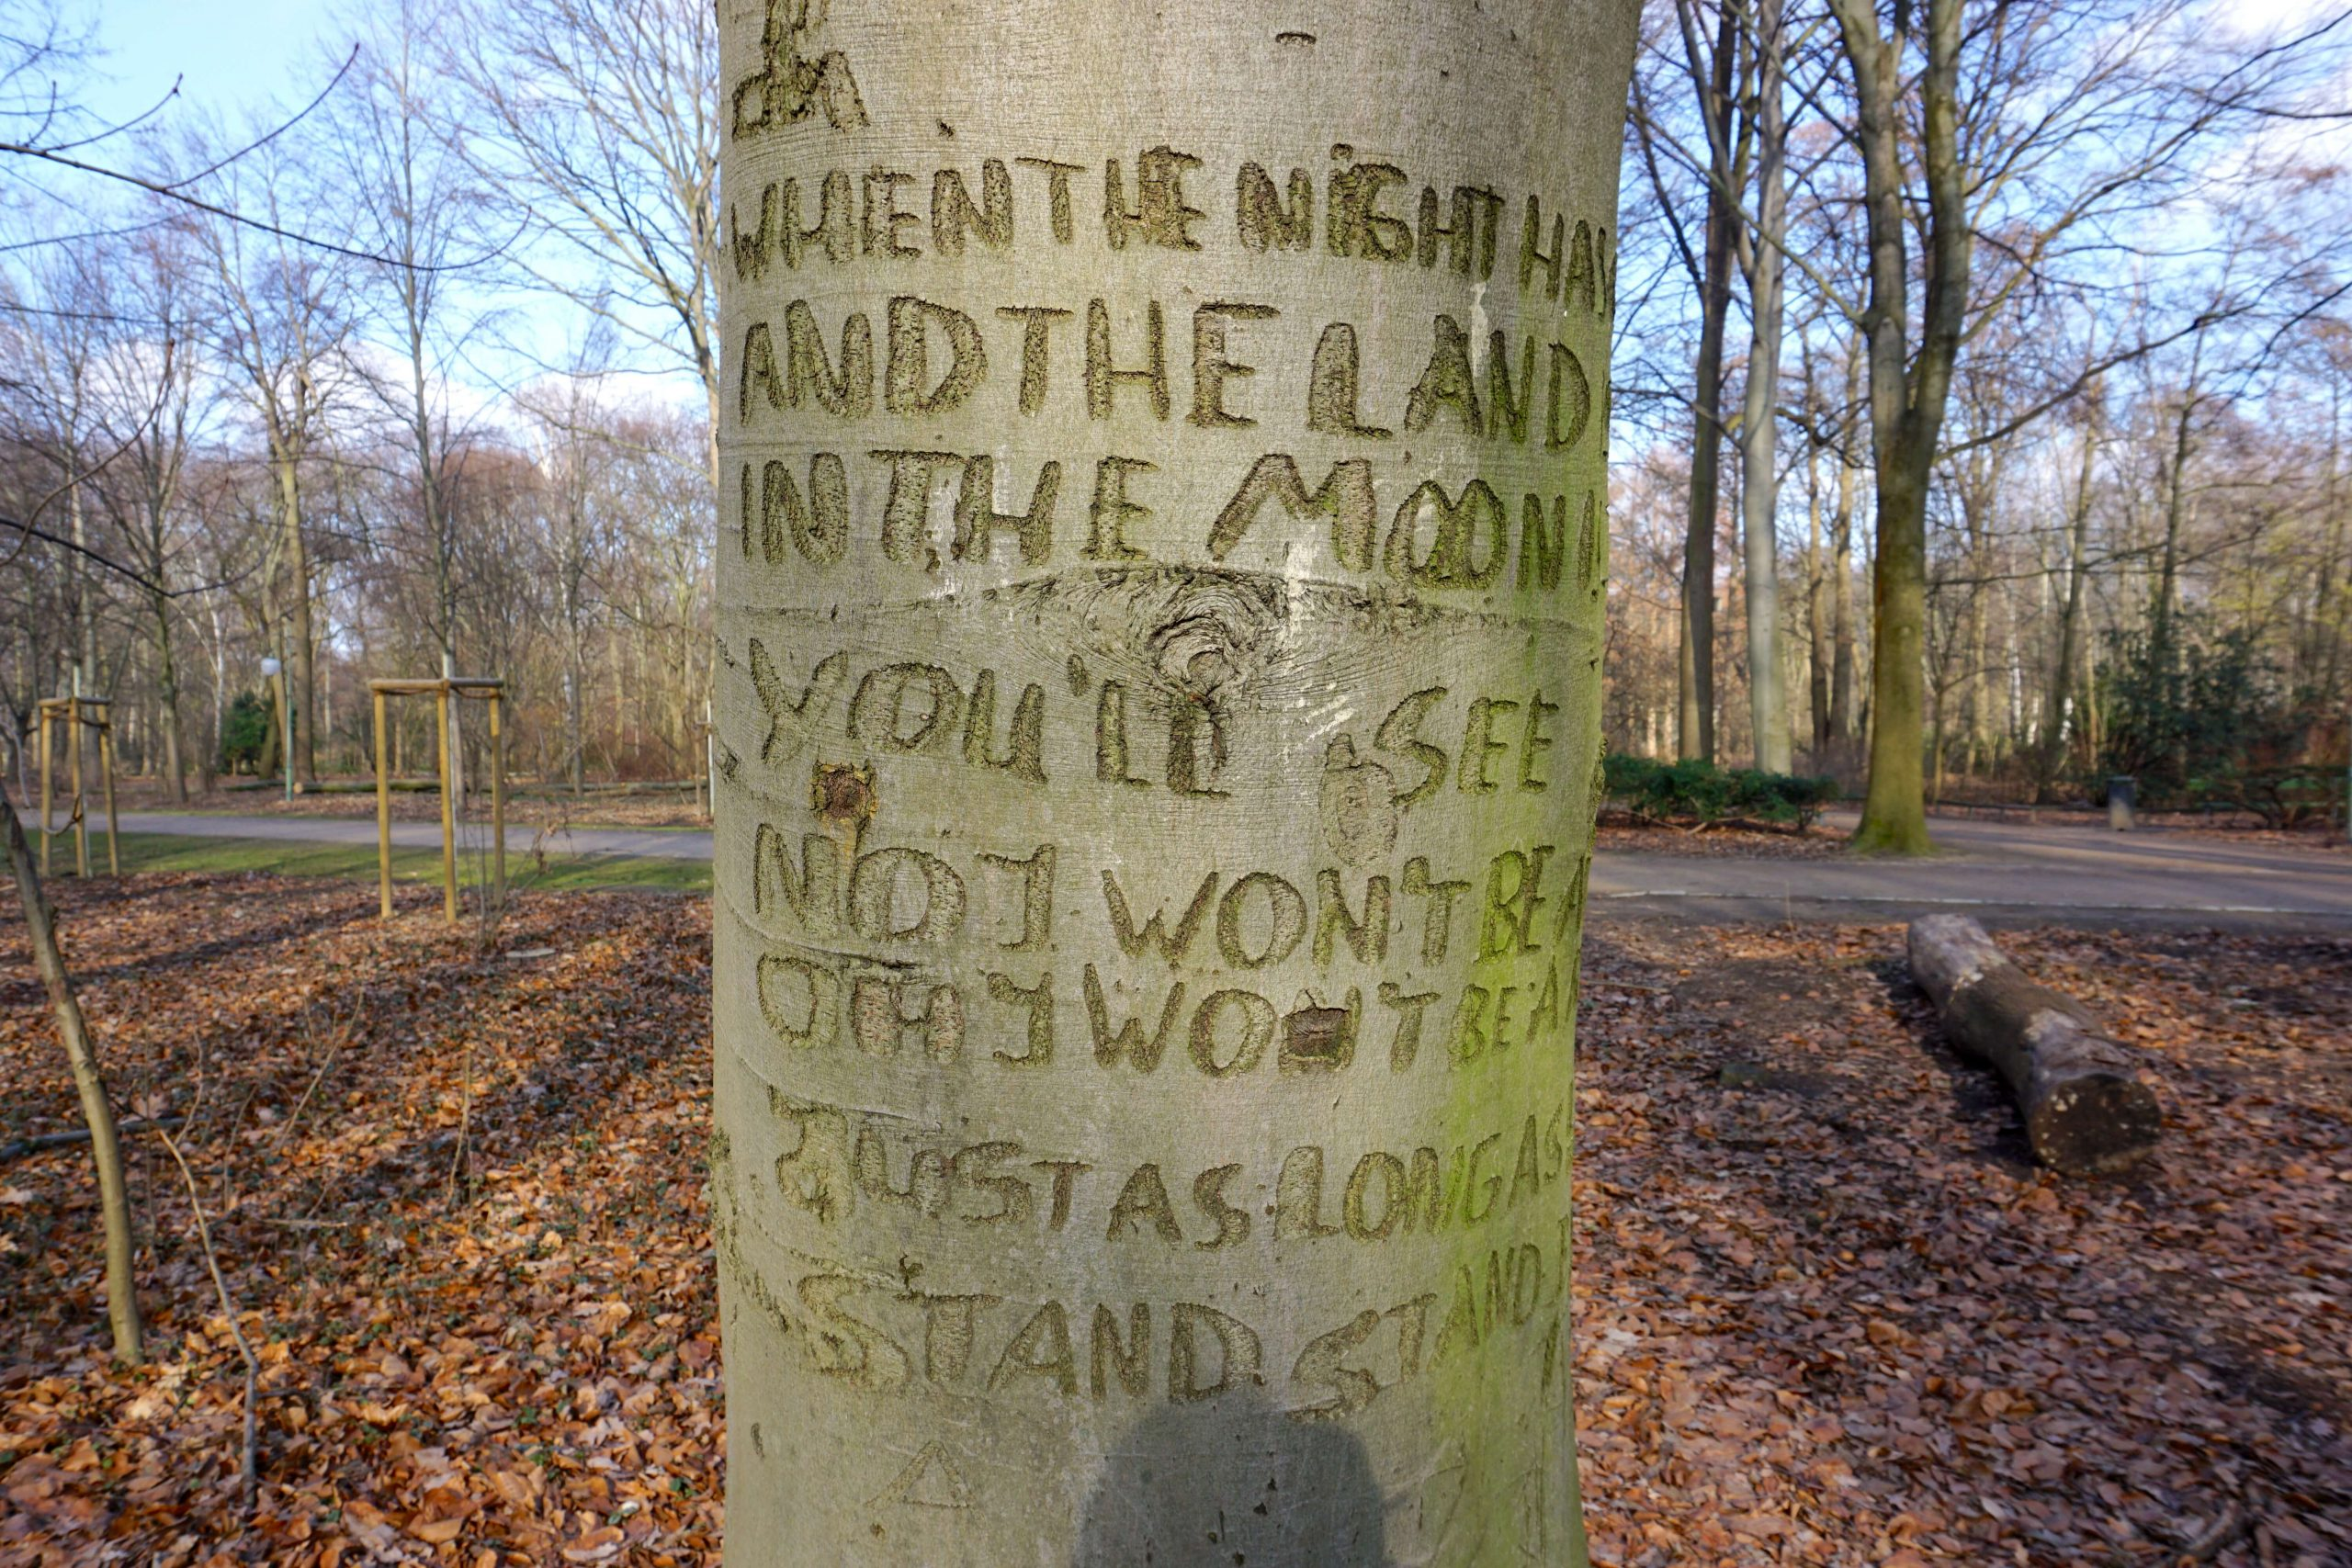 Stand By Me Tree in Berlin - A tree in Tiergarten with the opening lyrics to 'Stand By Me' carved into it